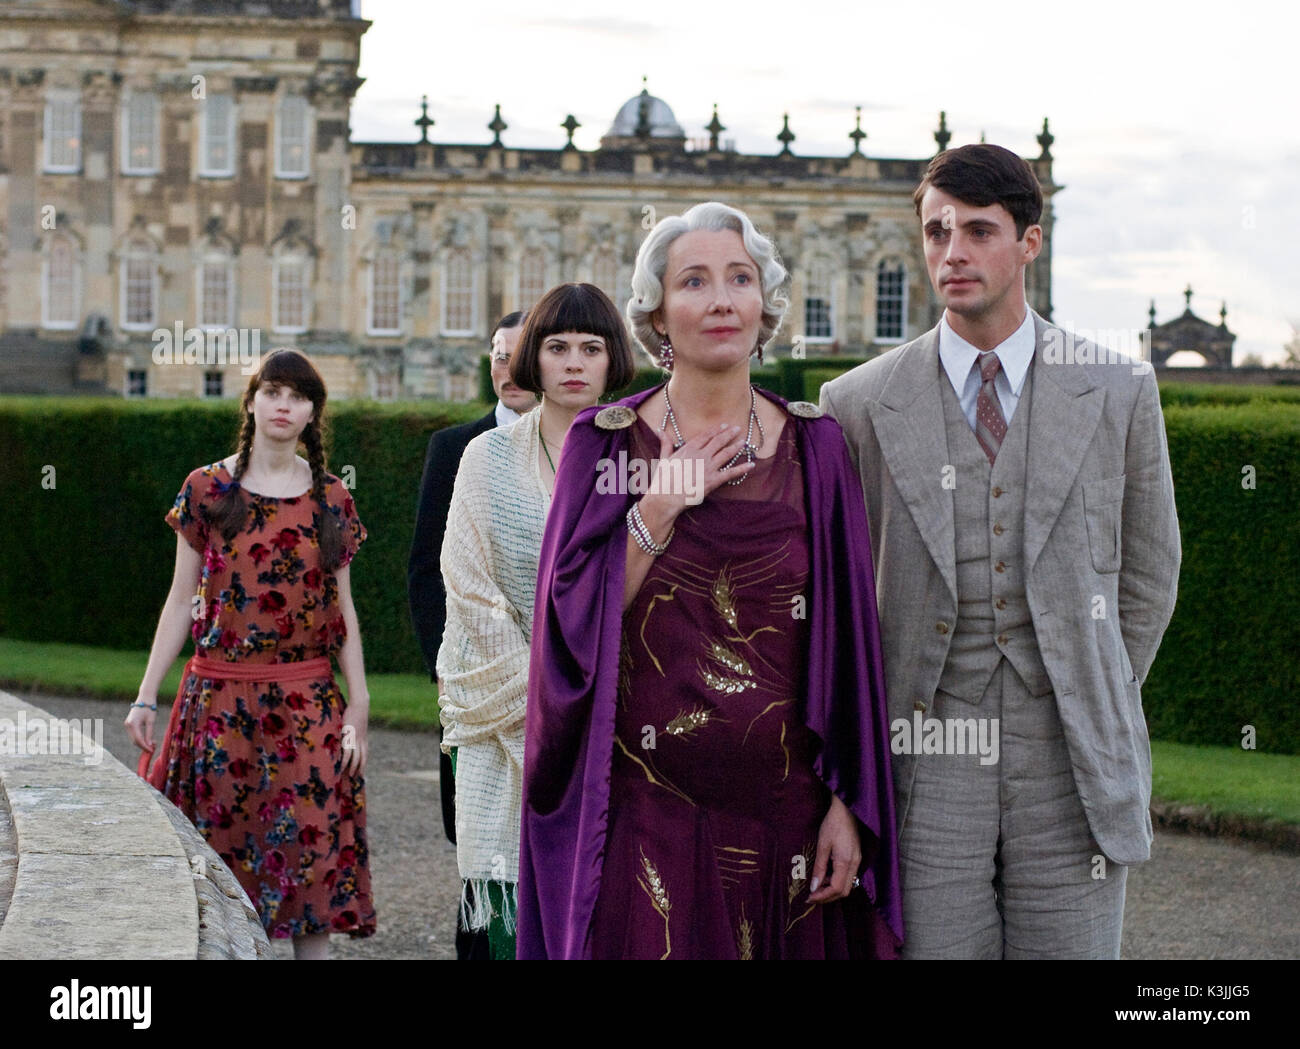 BRIDESHEAD REVISITED FELICITY JONES as Lady Cordelia Flyte, ED STOPPARD as Bridley Flyte , HAYLEY ATWELL as Julia Flyte, EMMA THOMPSON as Lady Marchmain, MATTHEW GOODE as Charles Ryder BRIDESHEAD REVISITED [BR / US 2008] FELICITY JONES as Lady Cordelia Flyte, ED STOPPARD as Bridley Flyte [obscured], HAYLEY ATWELL as Julia Flyte, EMMA THOMPSON as Lady Marchmain, MATTHEW GOODE as Charles Ryder     Date: 2008 - Stock Image